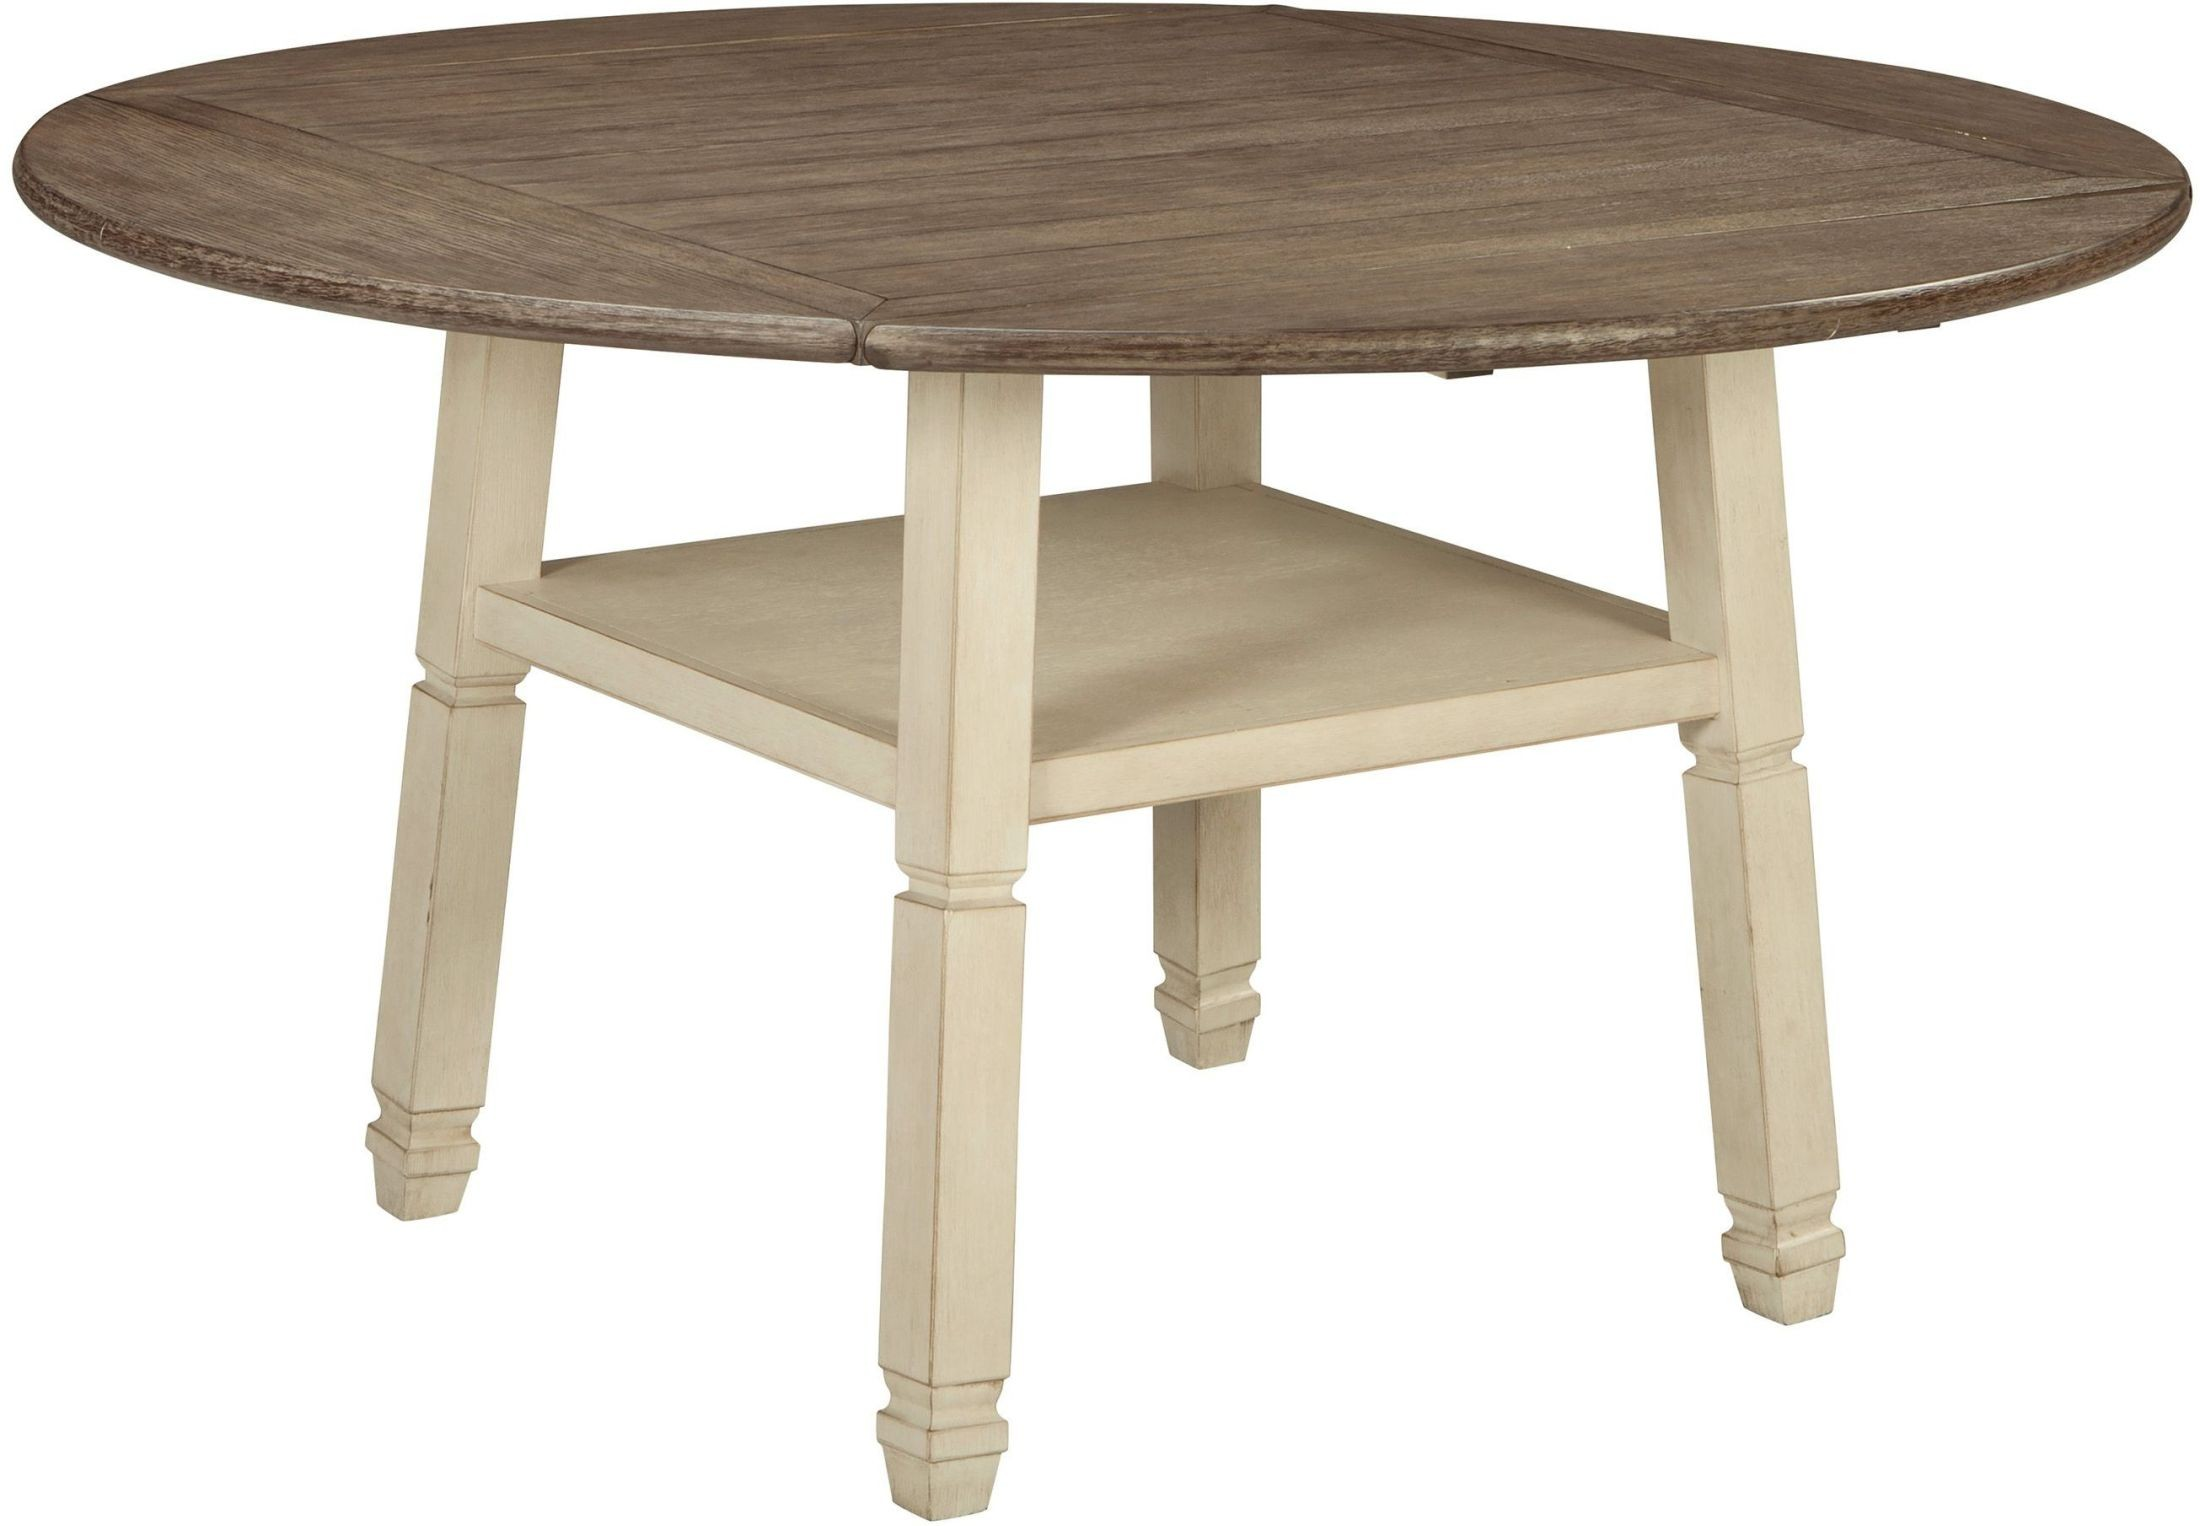 Counter Height Dining Tables: Bolanburg Two-tone Round Counter Height Dining Table From